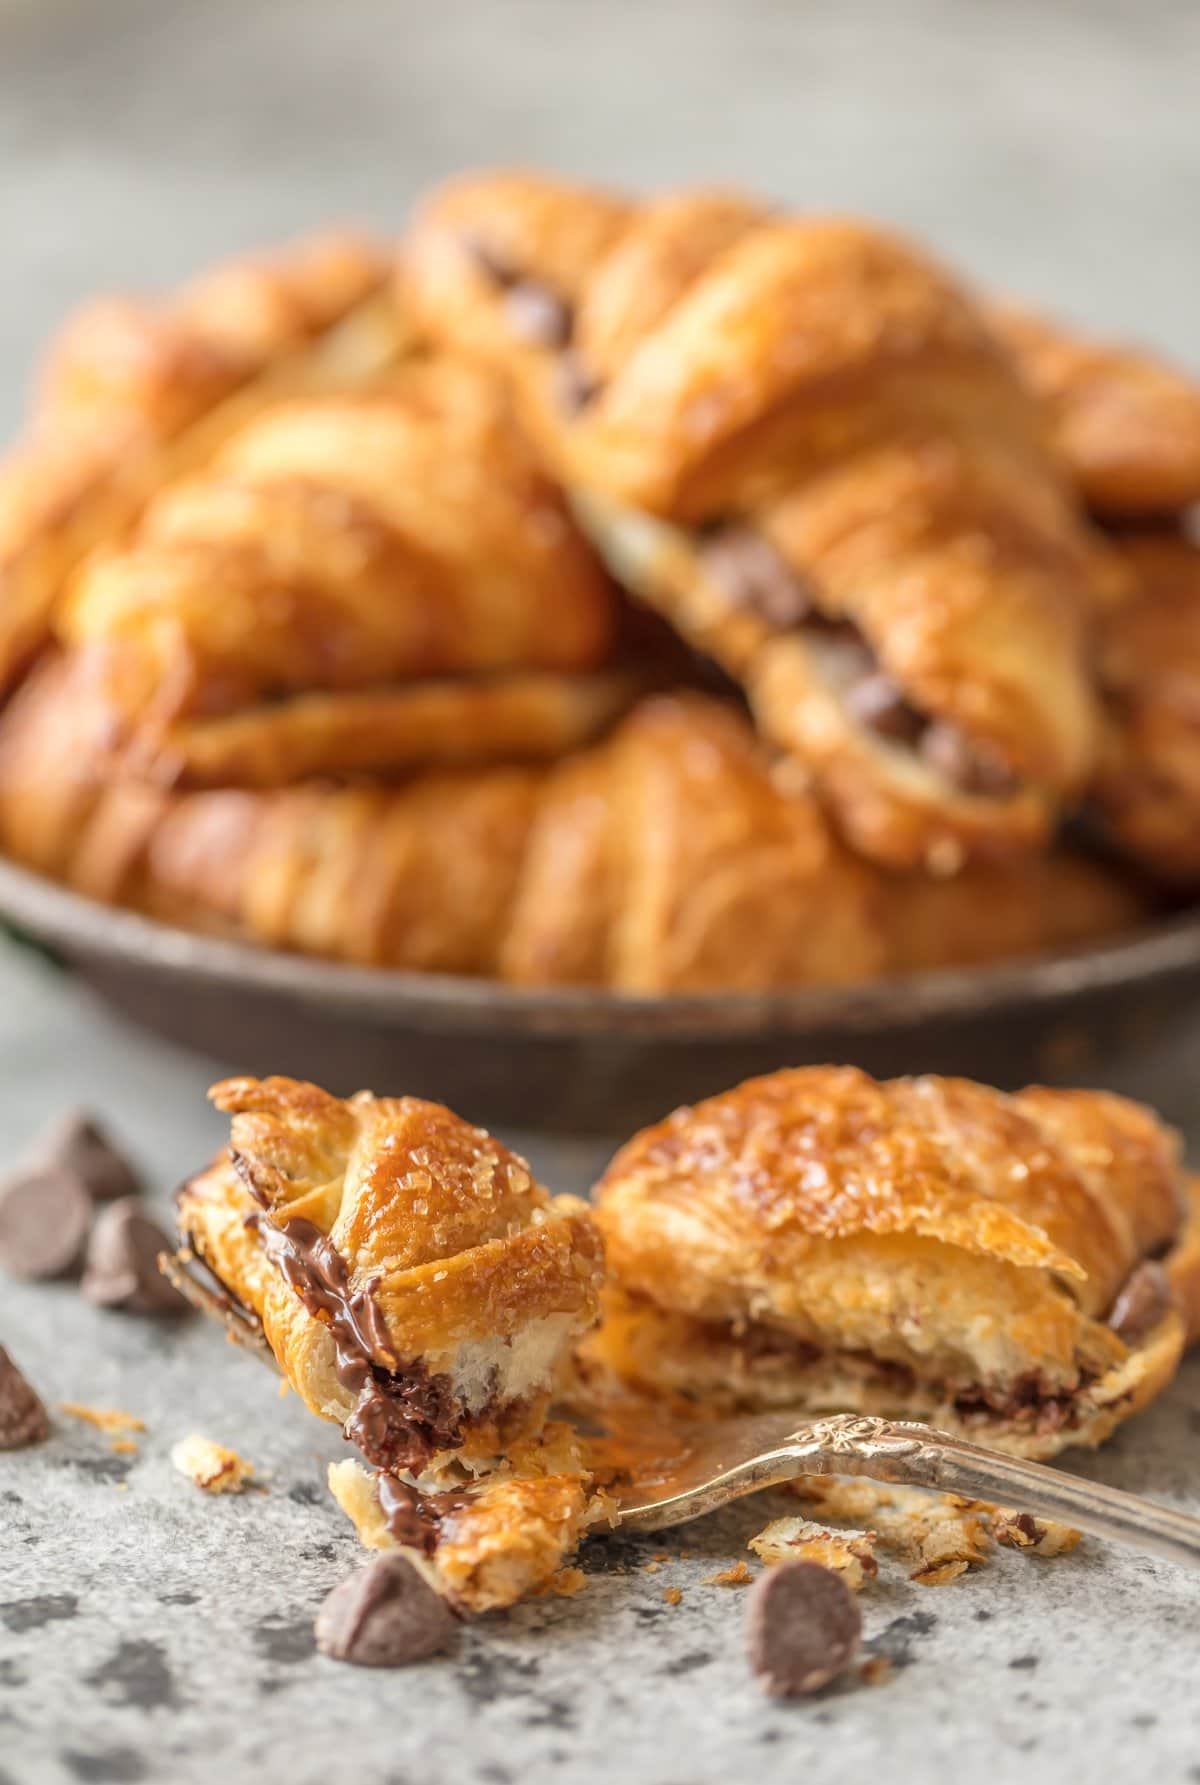 Chocolate Croissant Recipe Easy Chocolate Croissants For